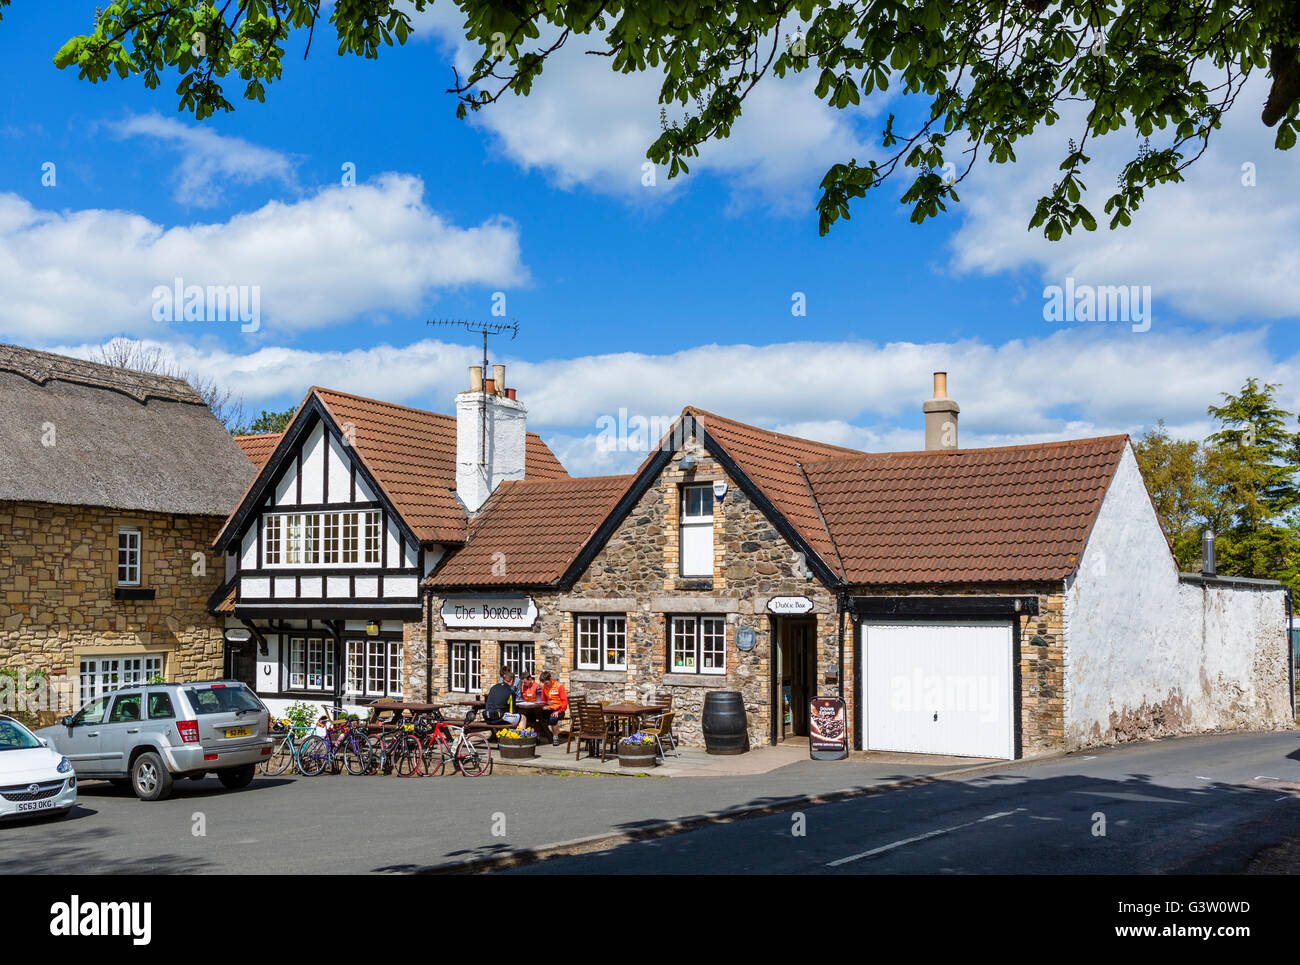 The Border hotel and public house, official end of the Pennine Way, Kirk Yetholm, Scottish Borders, Scotland, UK - Stock Image